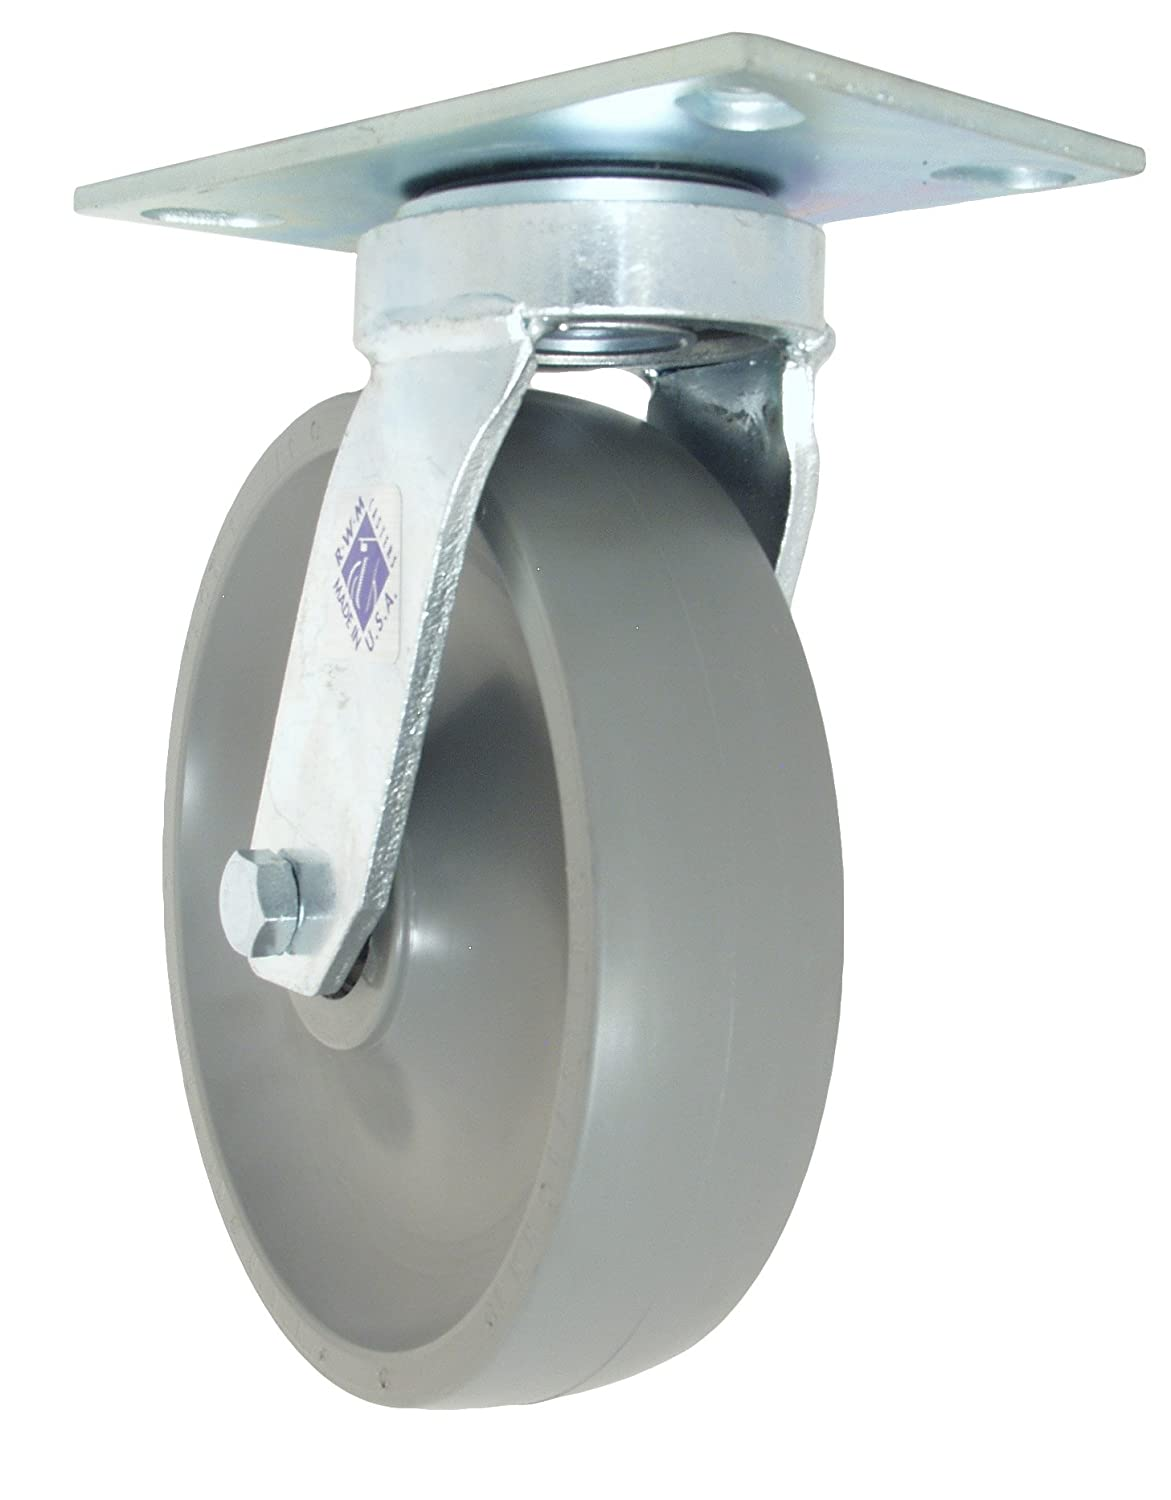 Swivel Caster 8 GT Wheel with 42ST Optional Mounting Plate RWM Casters 48-GTB-0820-S-42ST 48 Freedom Series 9-1//2 High 8 GT Wheel with 42ST Optional Mounting Plate